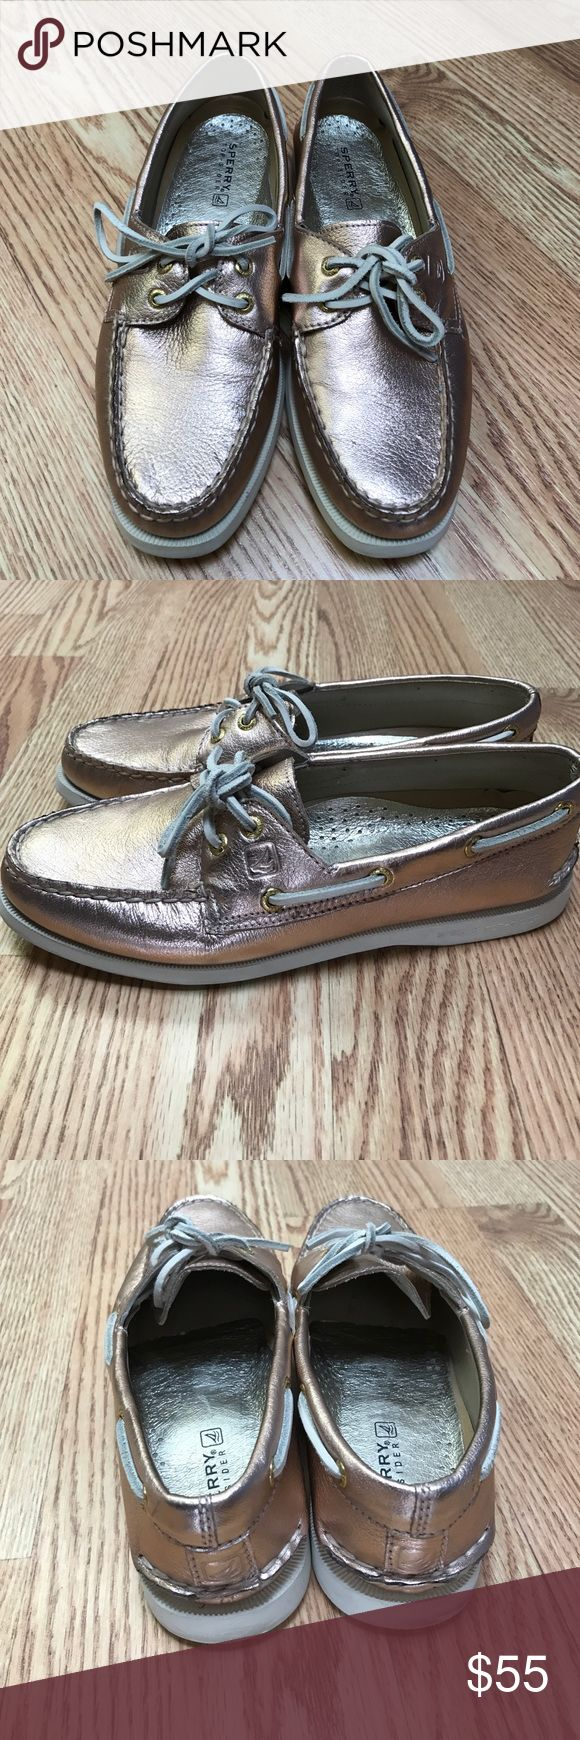 Rose Gold Sperry's Rose gold Sperry's perfect for Spring! Only worn once and in great condition. Metallic leather upper, leather lining, rubber sole. Sperry Top-Sider Shoes Flats & Loafers